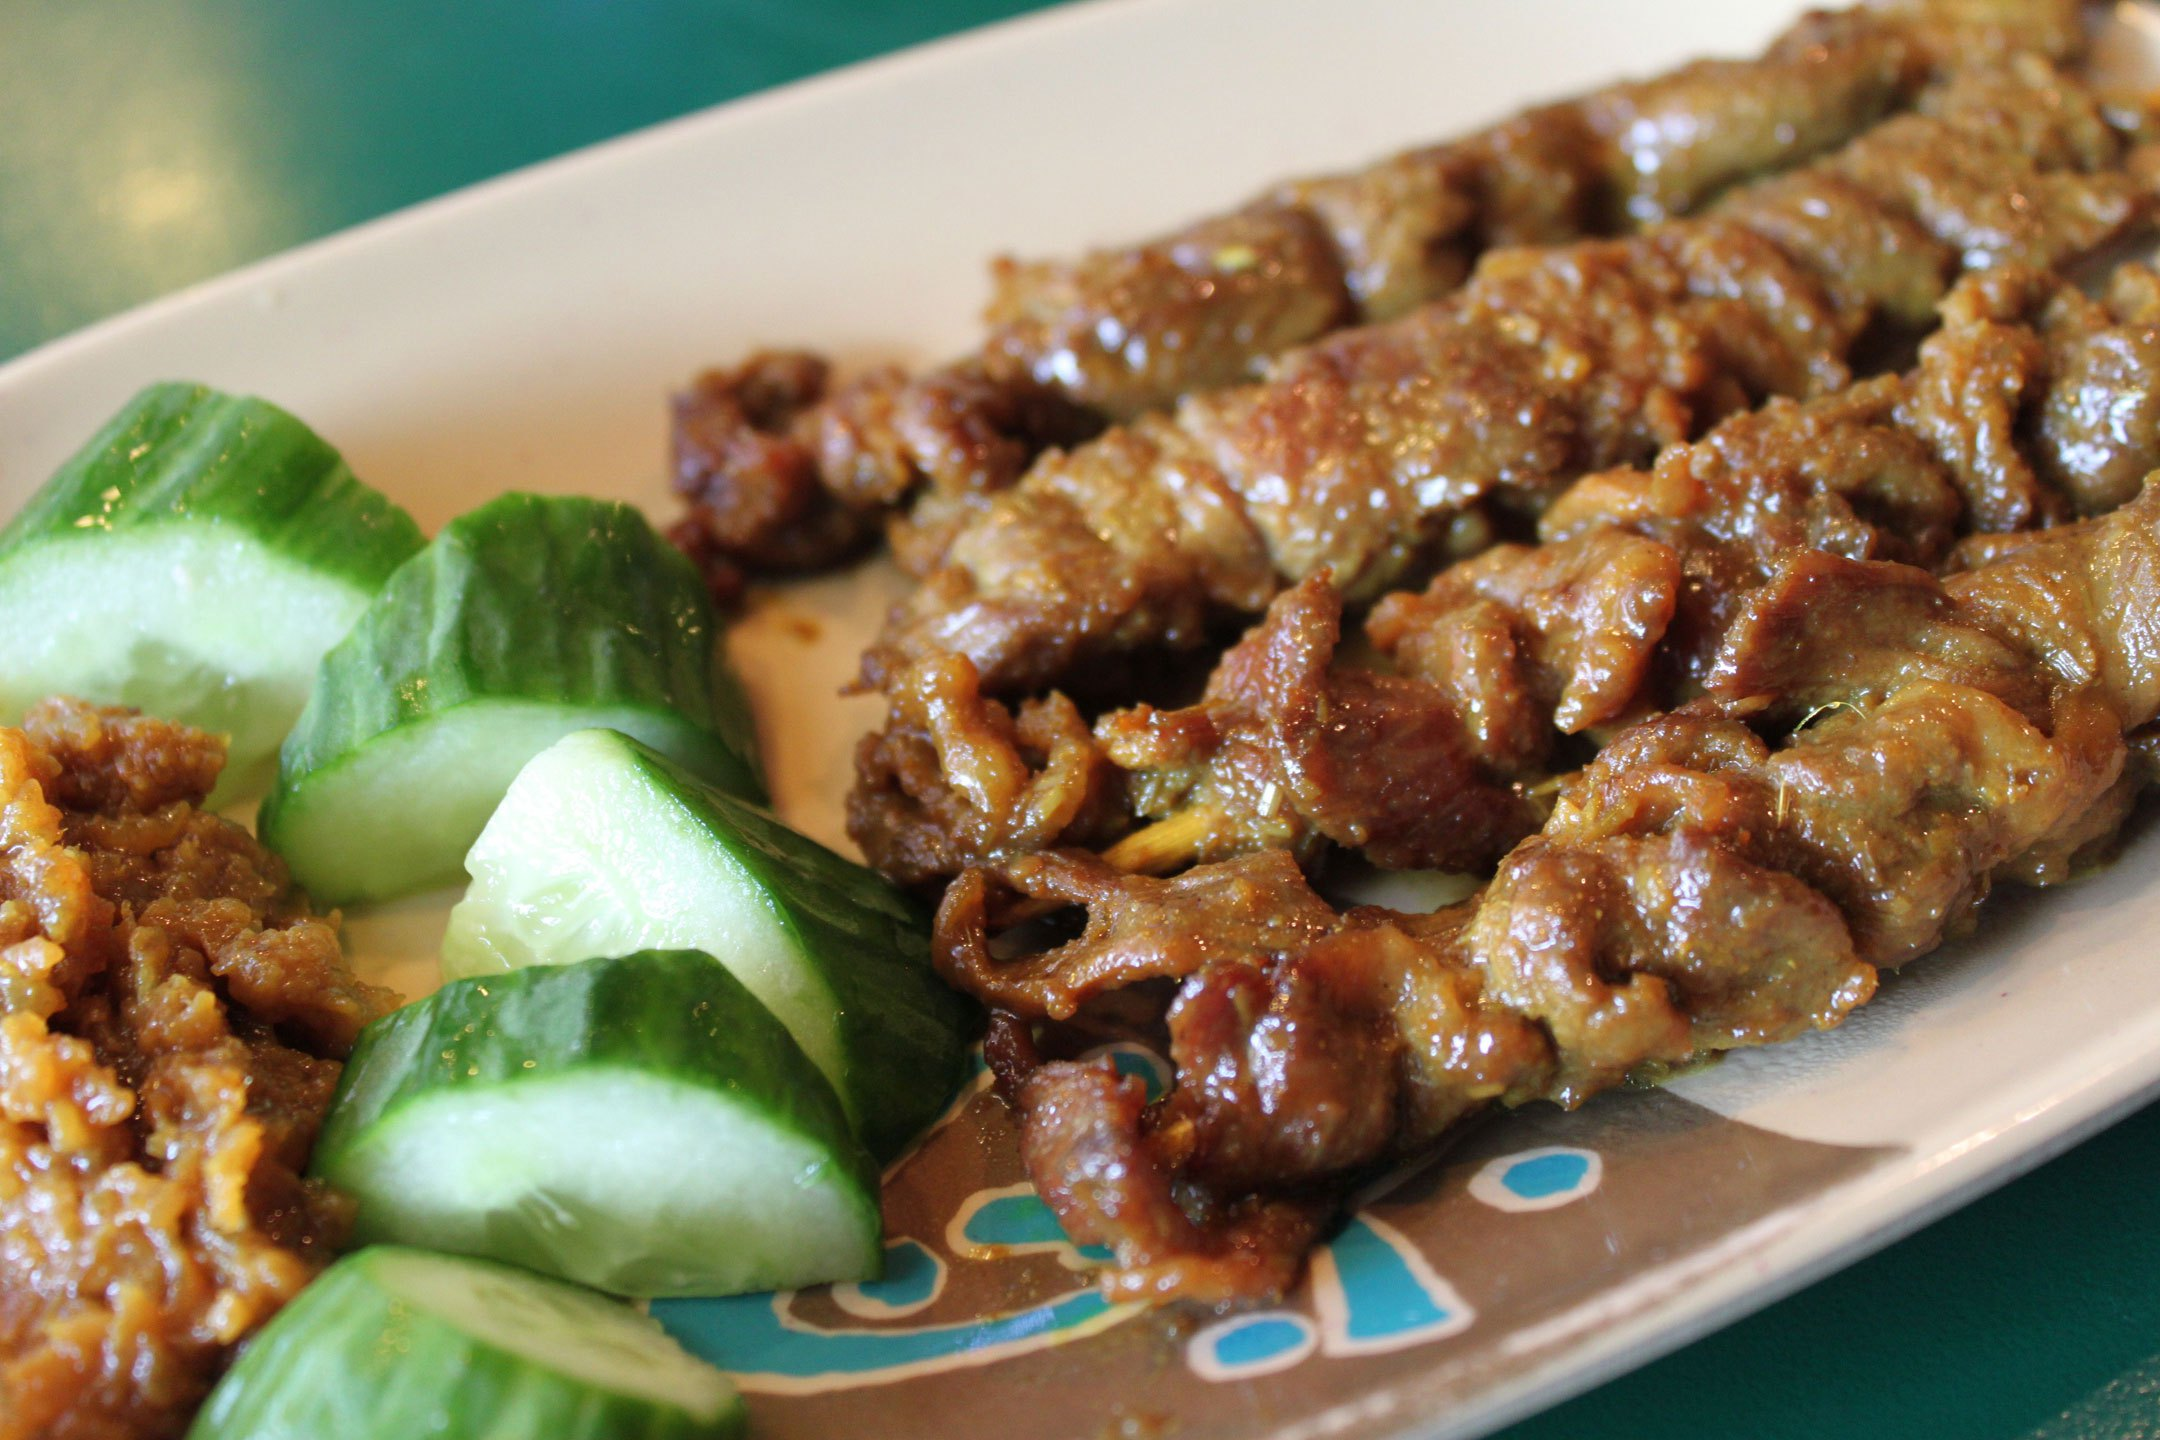 The Beef Satay at John 3:16 Malaysian Delights.